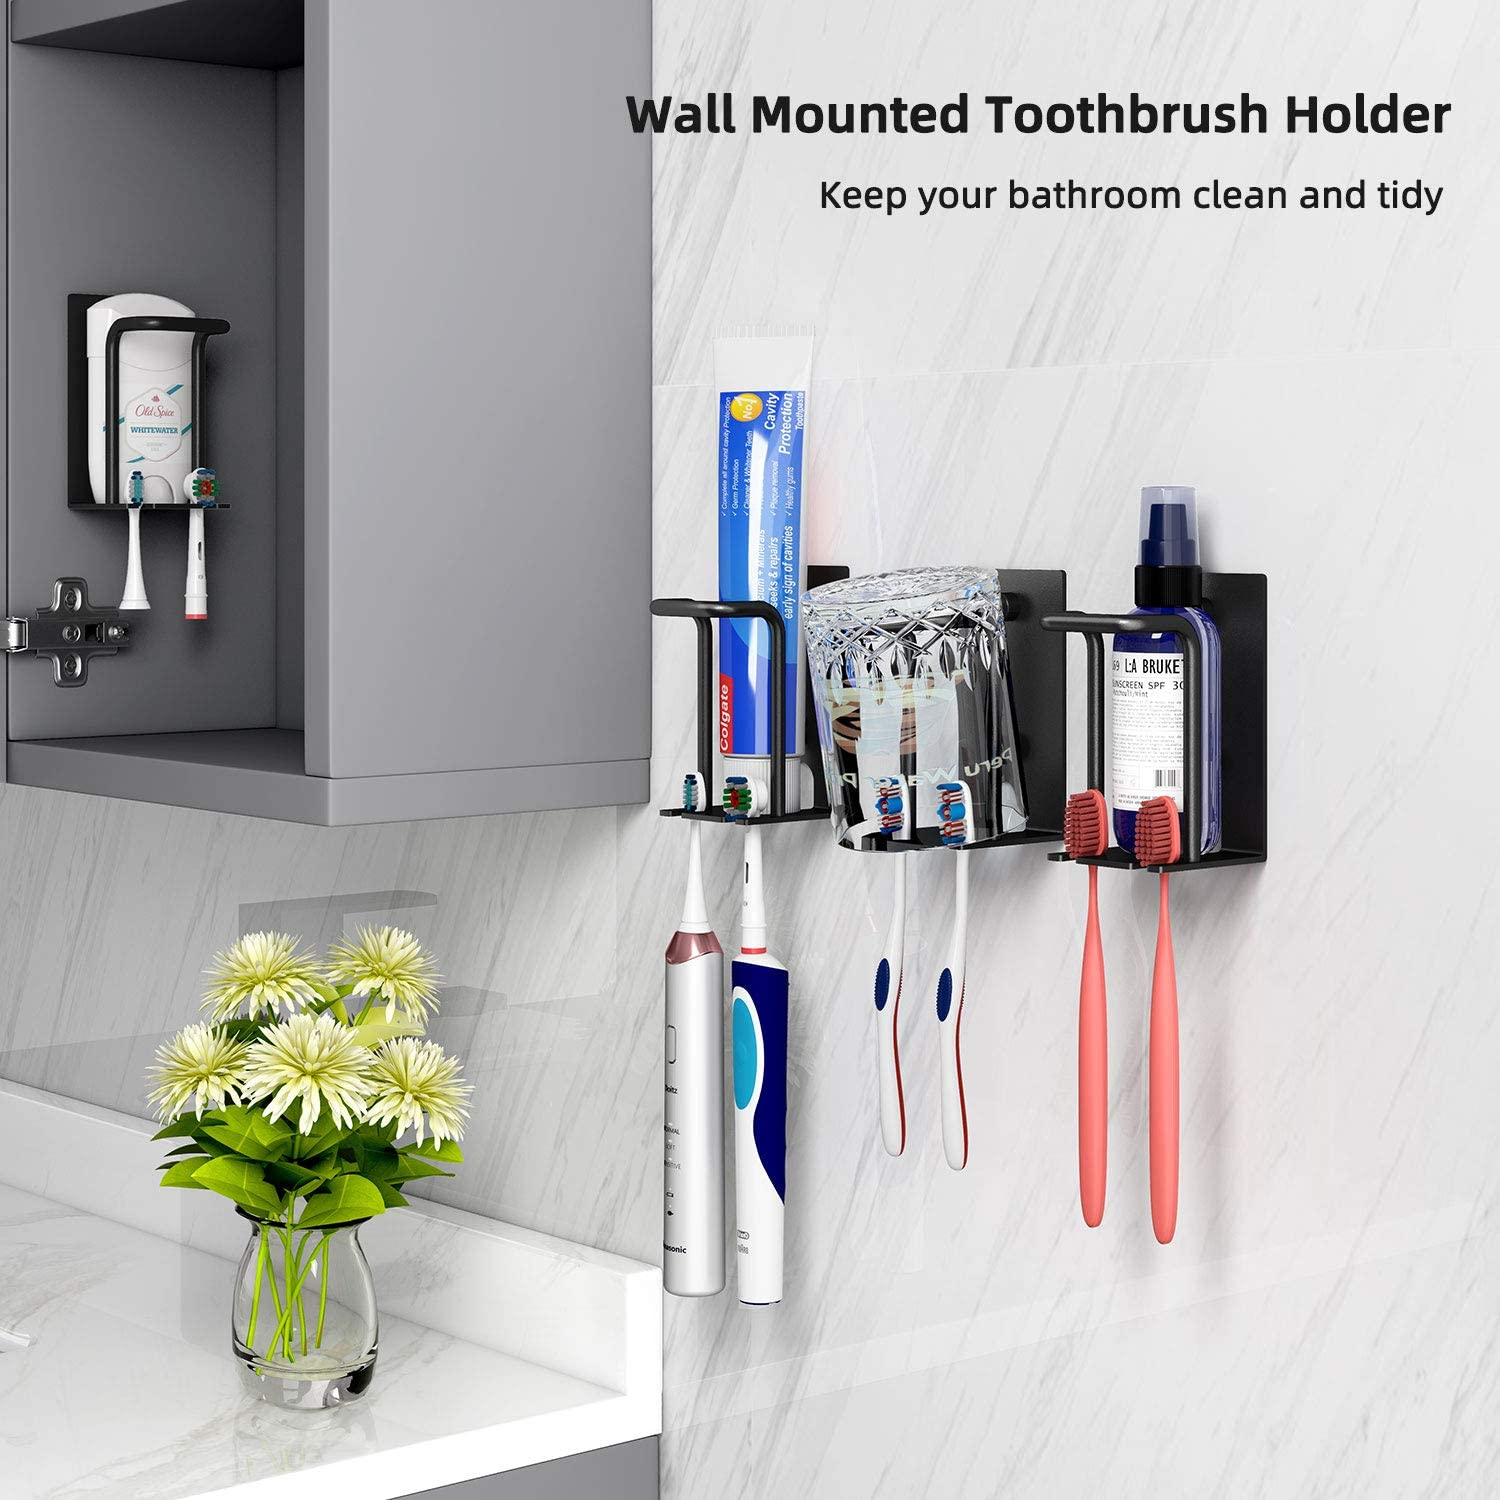 Gavia Electric Toothbrush Holder Toothbrush Holder Wall Mounted For Bathroom Shower Wall Toothbrush Organizer Adhesive Toothpaste Tooth Brush Cup Holder Self Draining Hygienic Toothbrush Head Holder Kitchen Dining